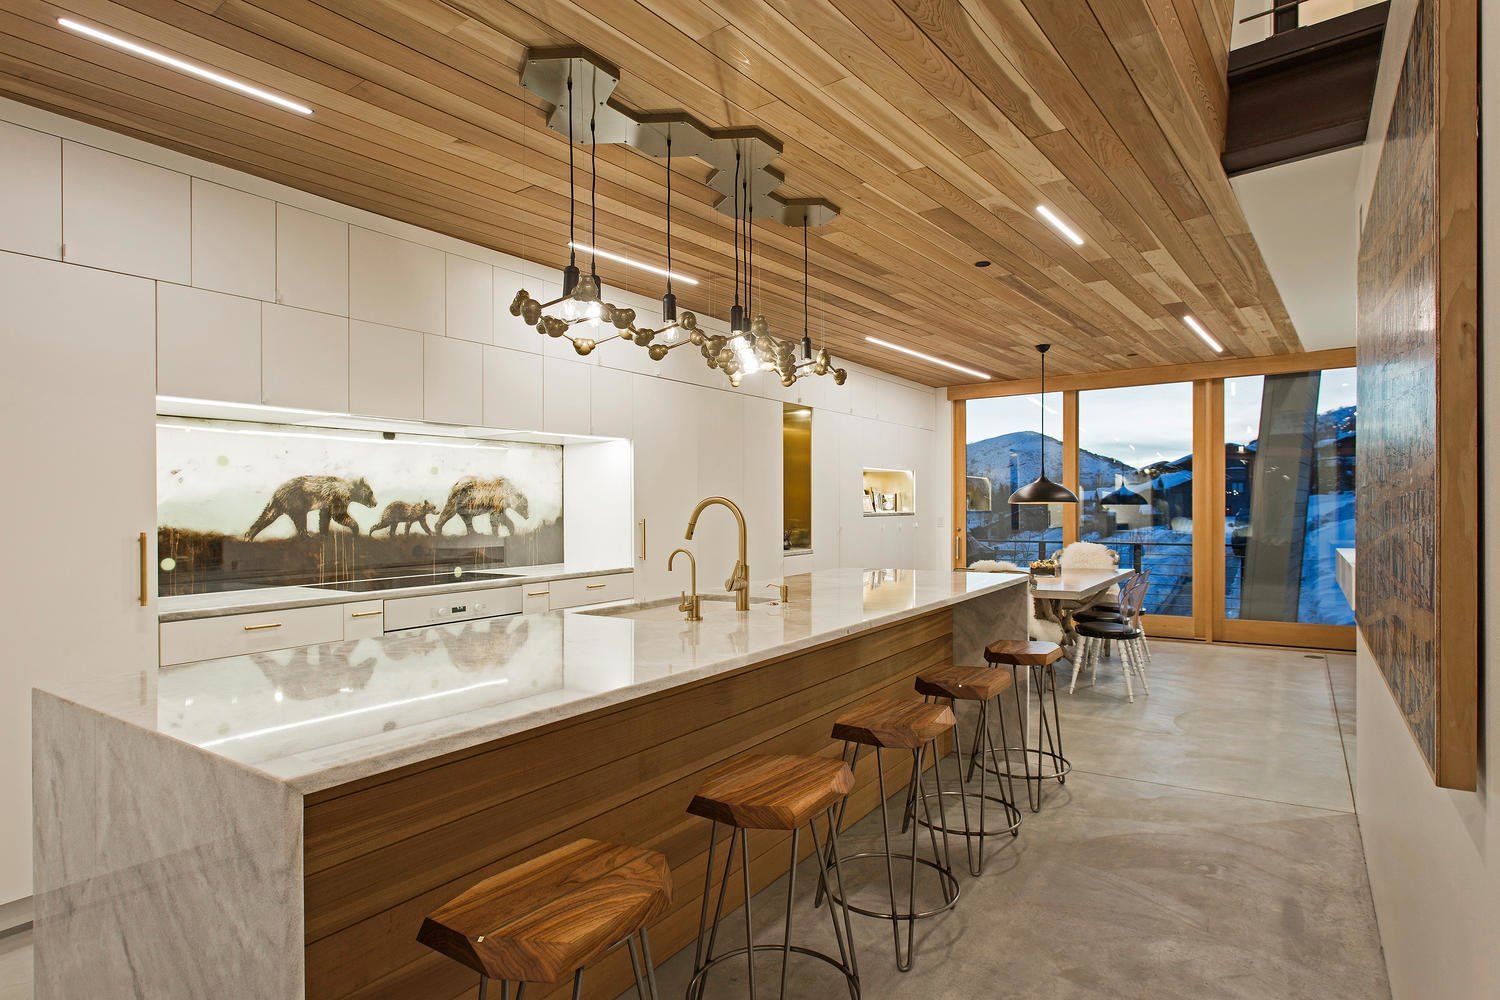 A chandelier by artist Joe Norman provides a dramatic accent to the kitchen and dining areas. The backsplash was a commission by the artist KOLABS, part of Mullin's wife's gallery. Tagged: Kitchen, Marble Counter, Wood Counter, White Cabinet, and Pendant Lighting.  Photo 5 of 10 in A Plunging Roof Carves Out Space in This Park City Home Offered at $2.4M